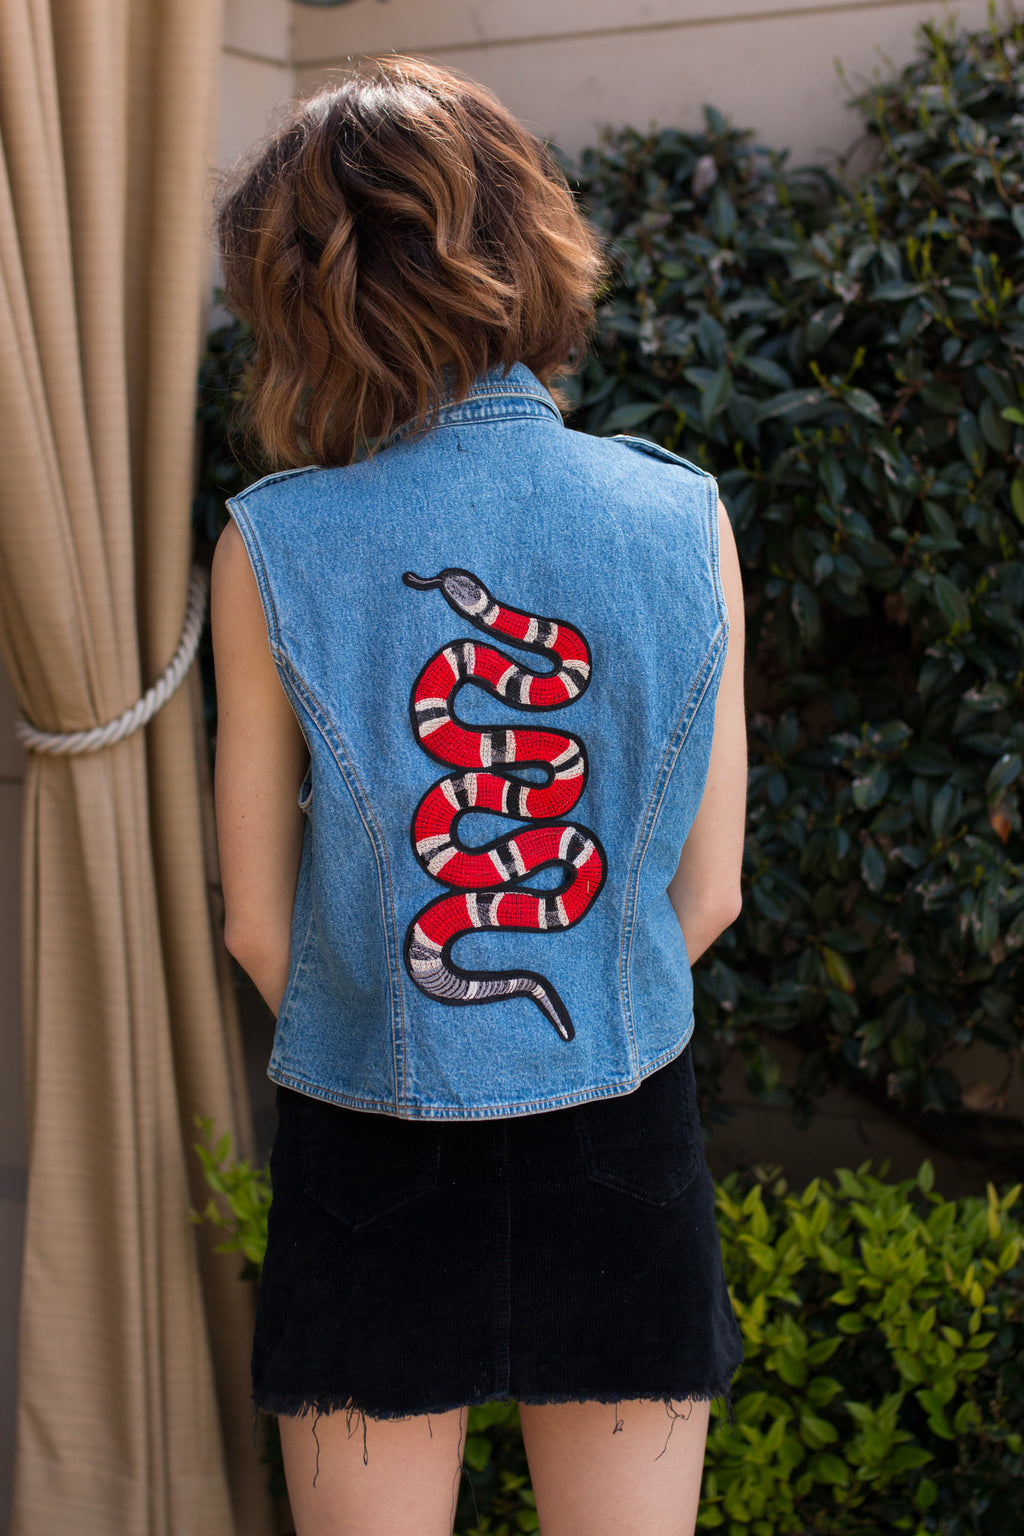 Roses & Snakes Patched Denim Vest